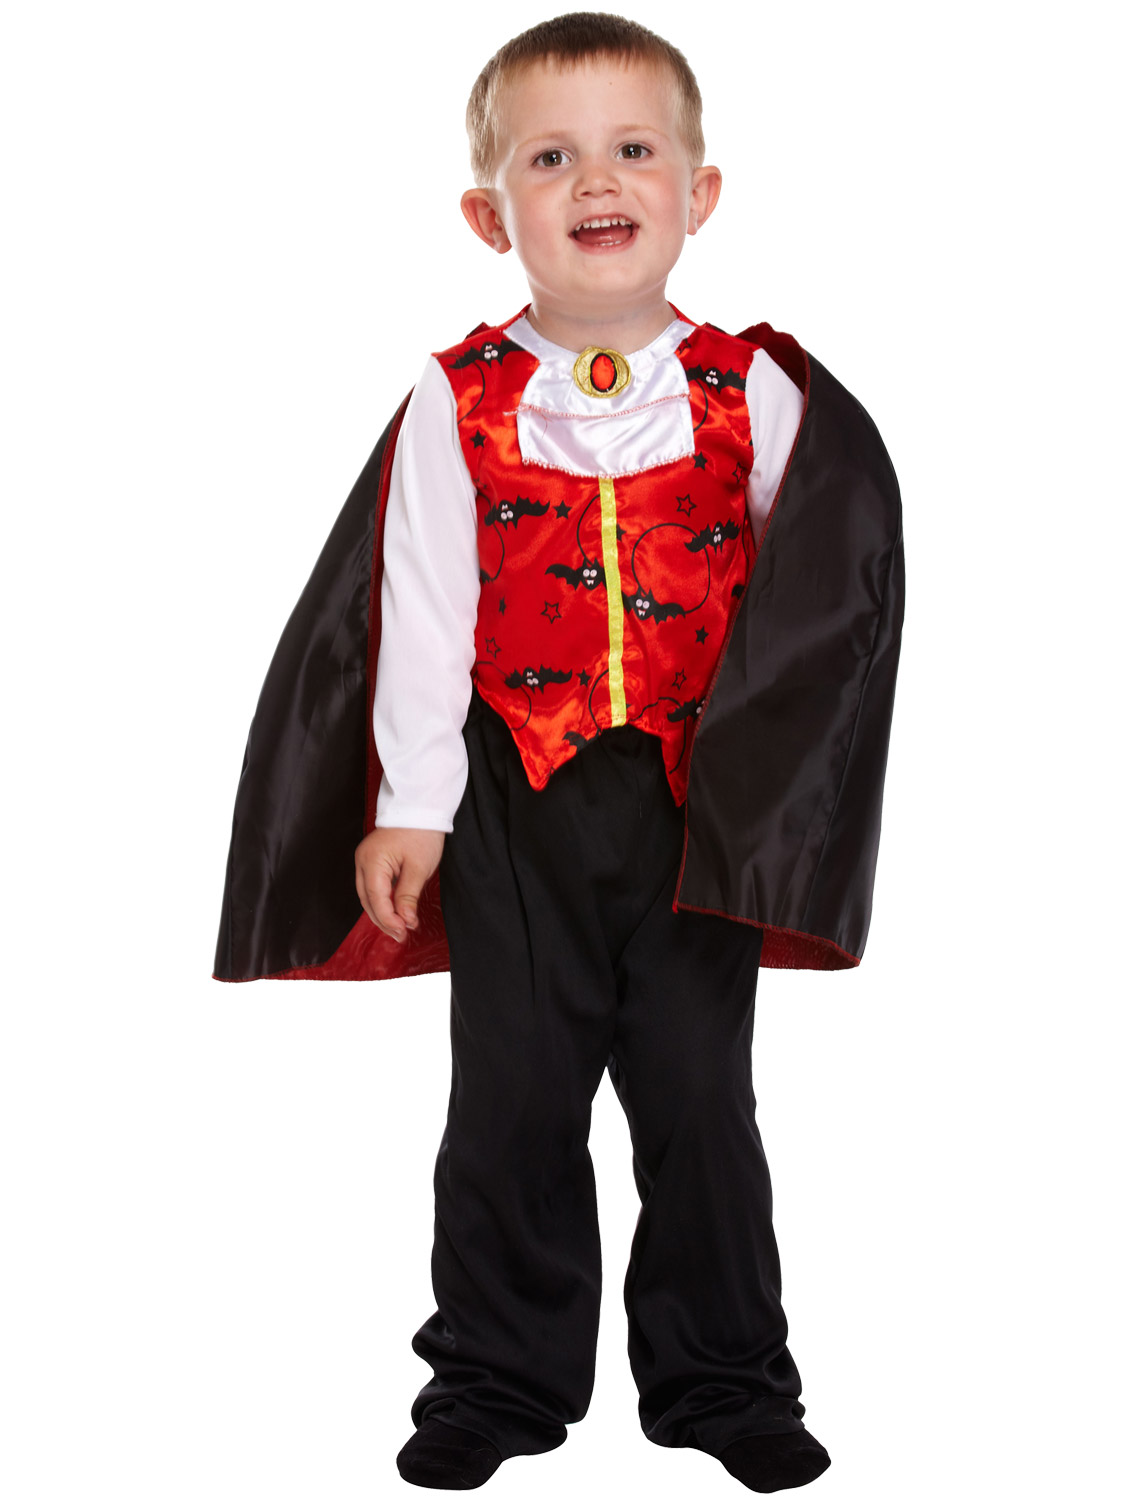 Details about Age 2 3 4 Toddler Halloween Costume Vampire Skeleton Fancy  Dress Kids Boys Girls